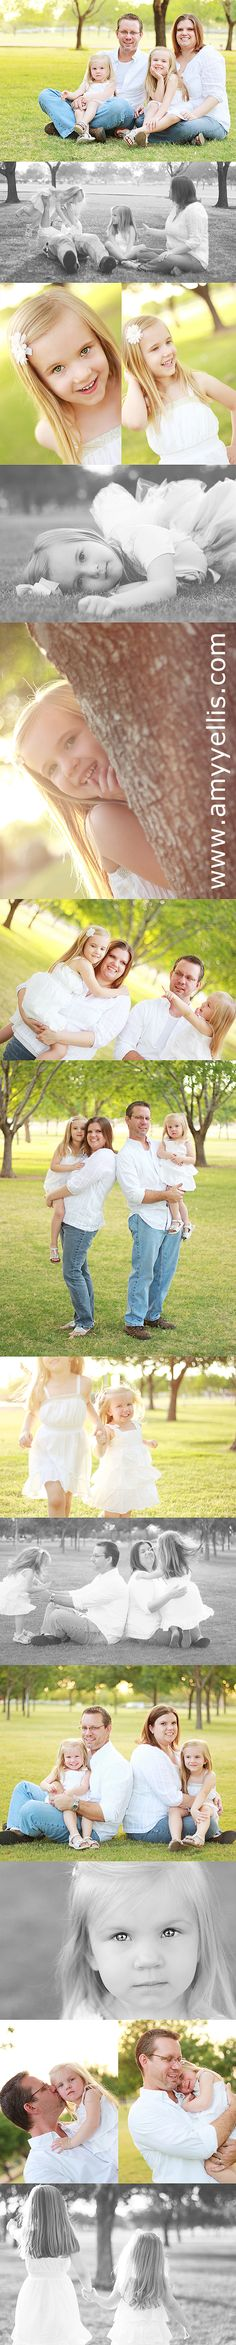 family pictures in the park